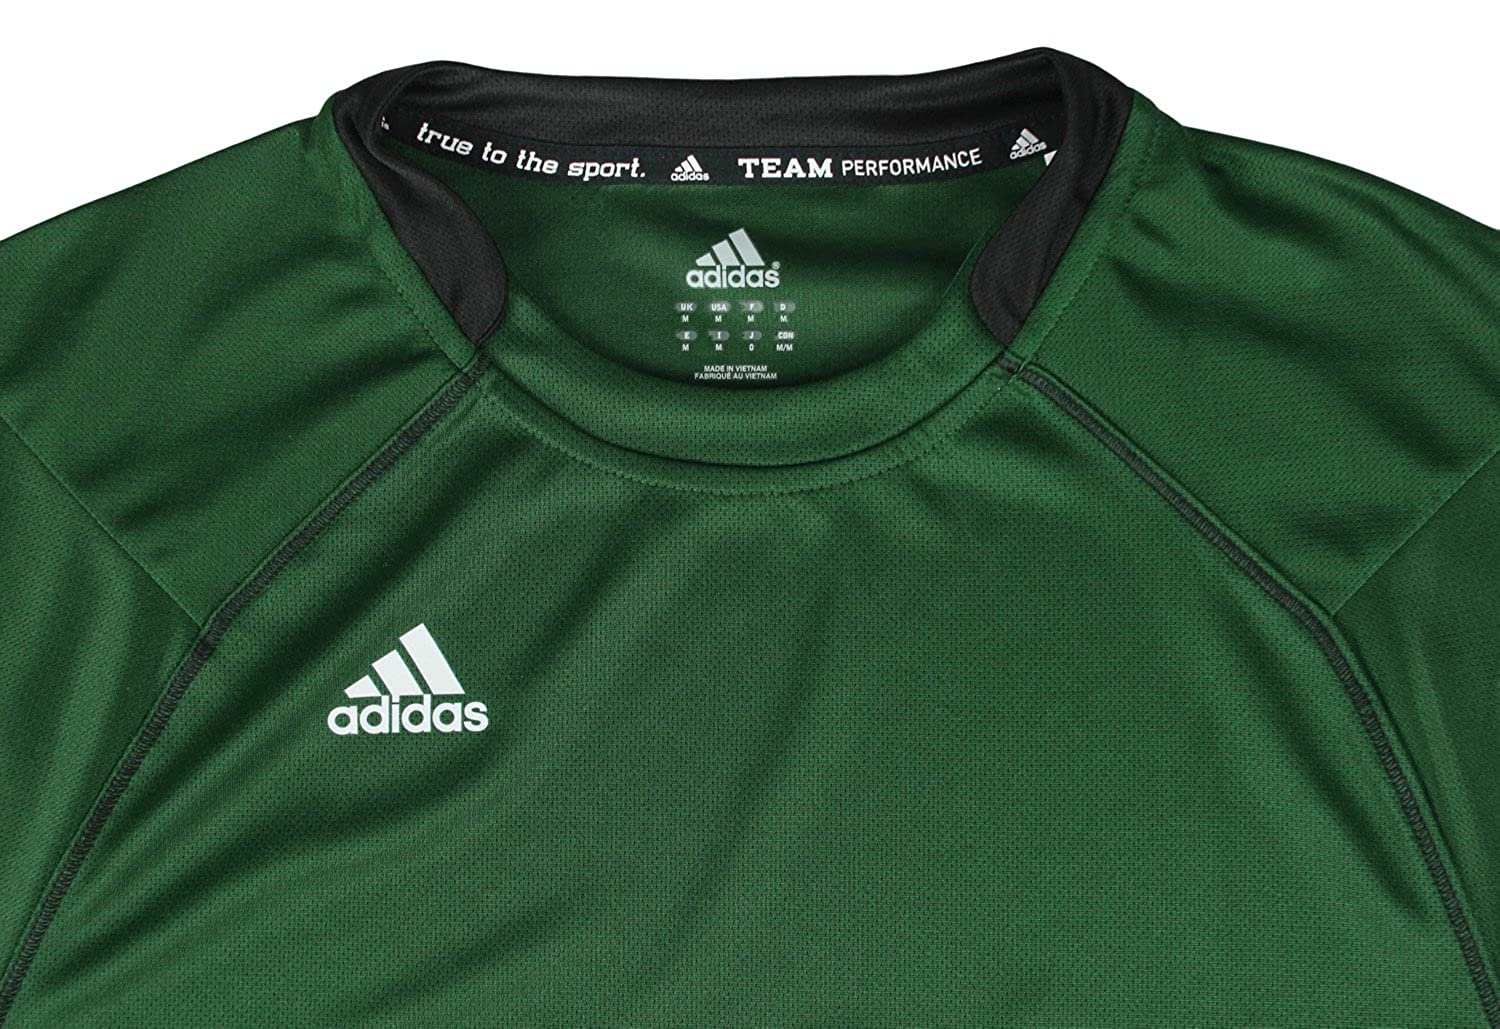 28f02dc51 adidas Mens Climalite Team Performance Athletic T-Shirt at Amazon Men's  Clothing store: